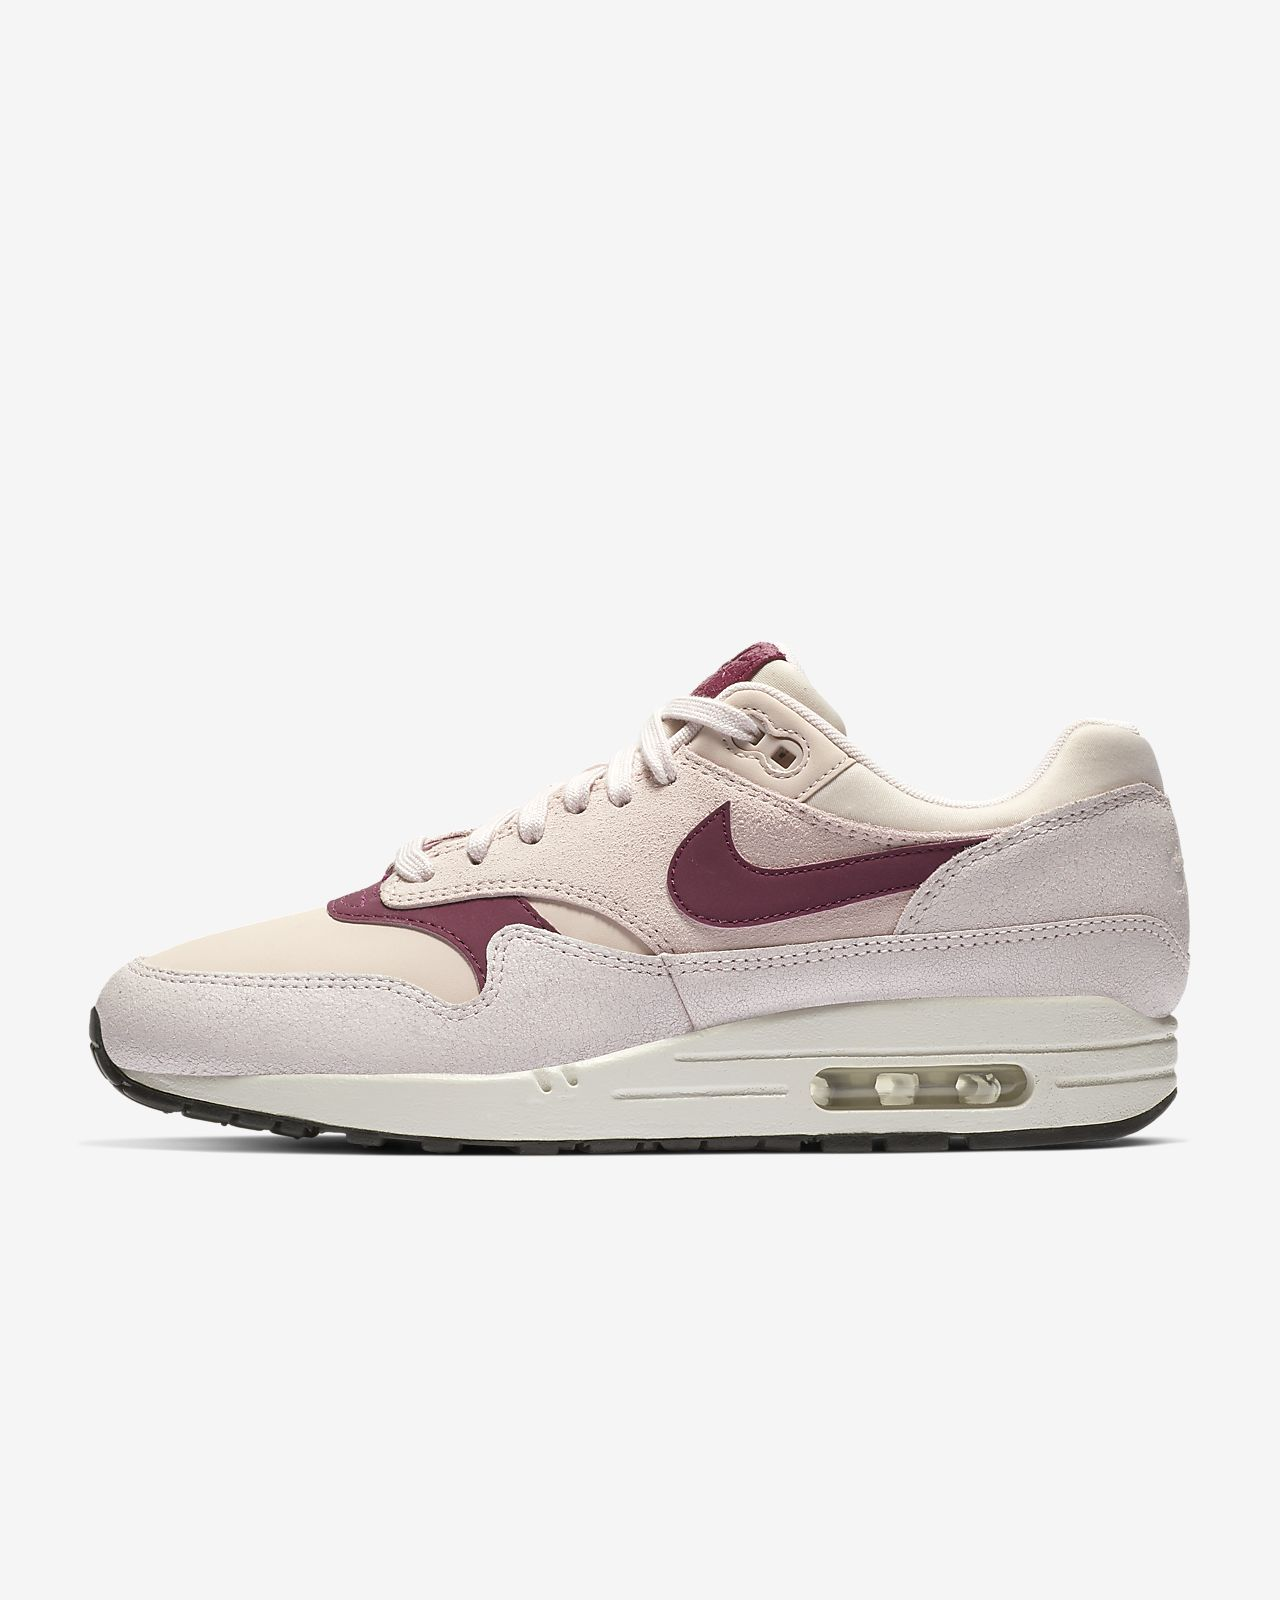 b32a5751913 Nike Air Max 1 Premium Women s Shoe. Nike.com GB